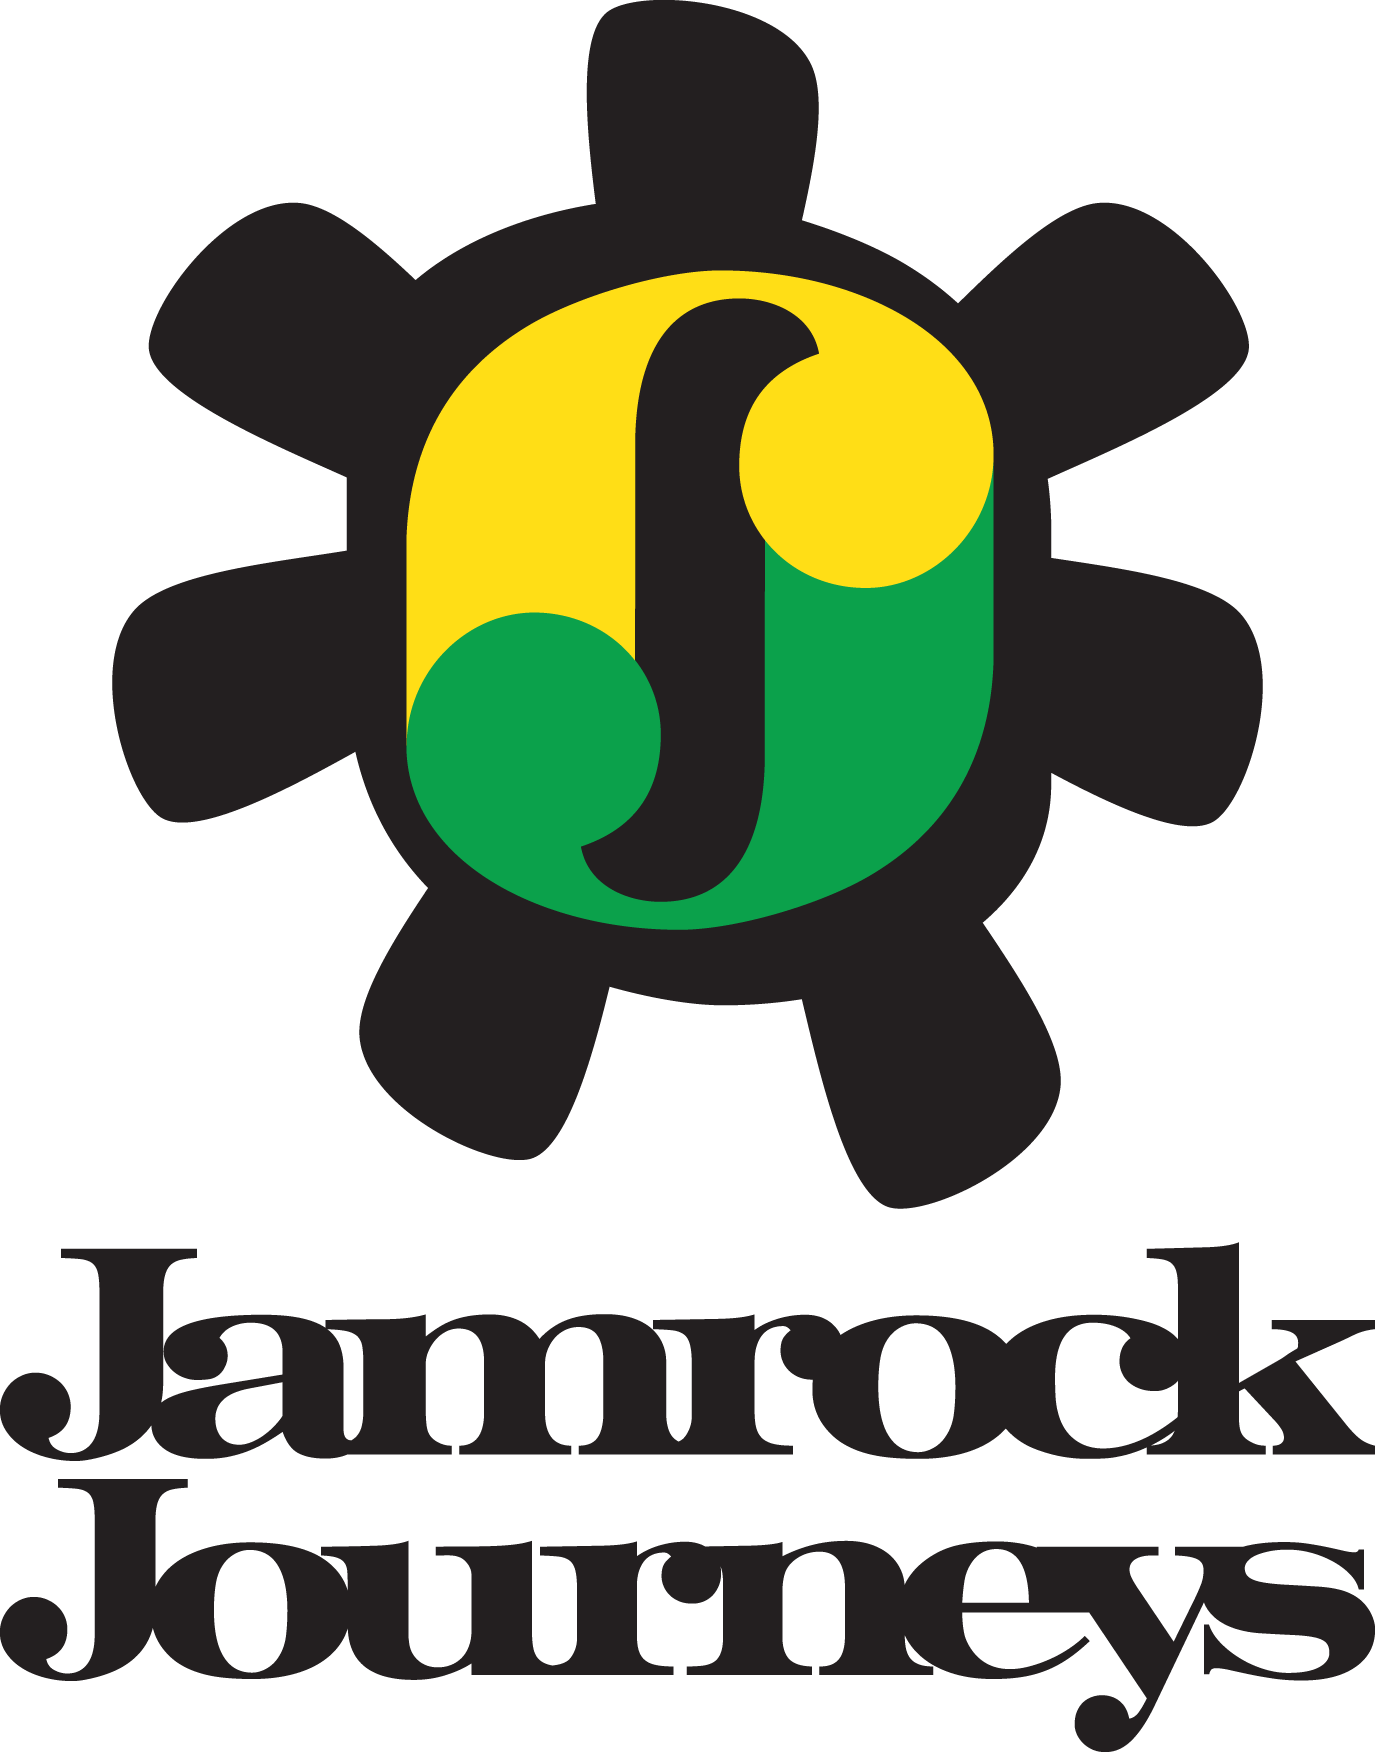 jamrockjourneys.com